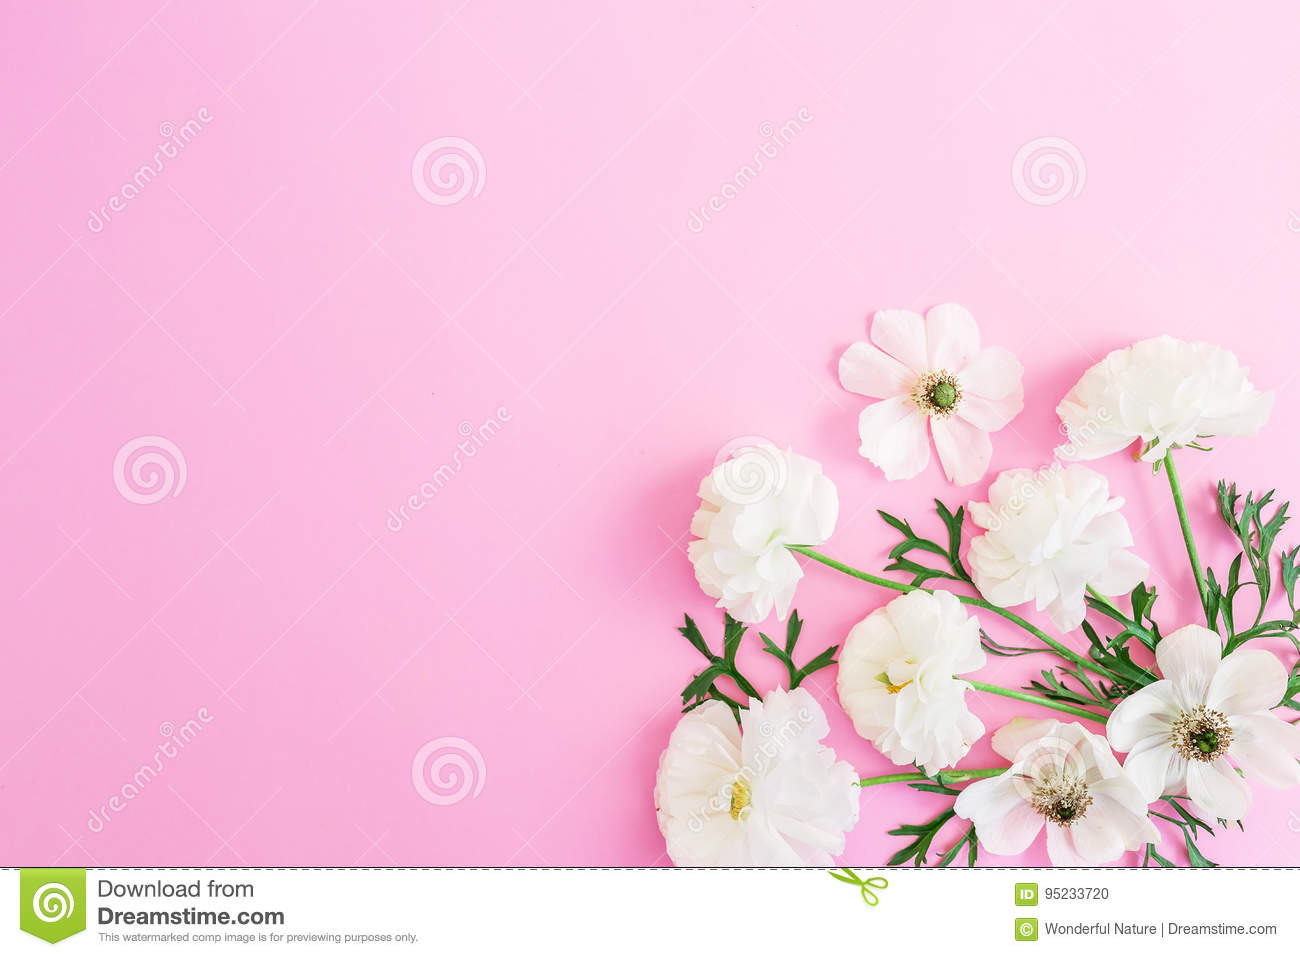 White flowers on pink background floral pattern flat lay top view download comp mightylinksfo